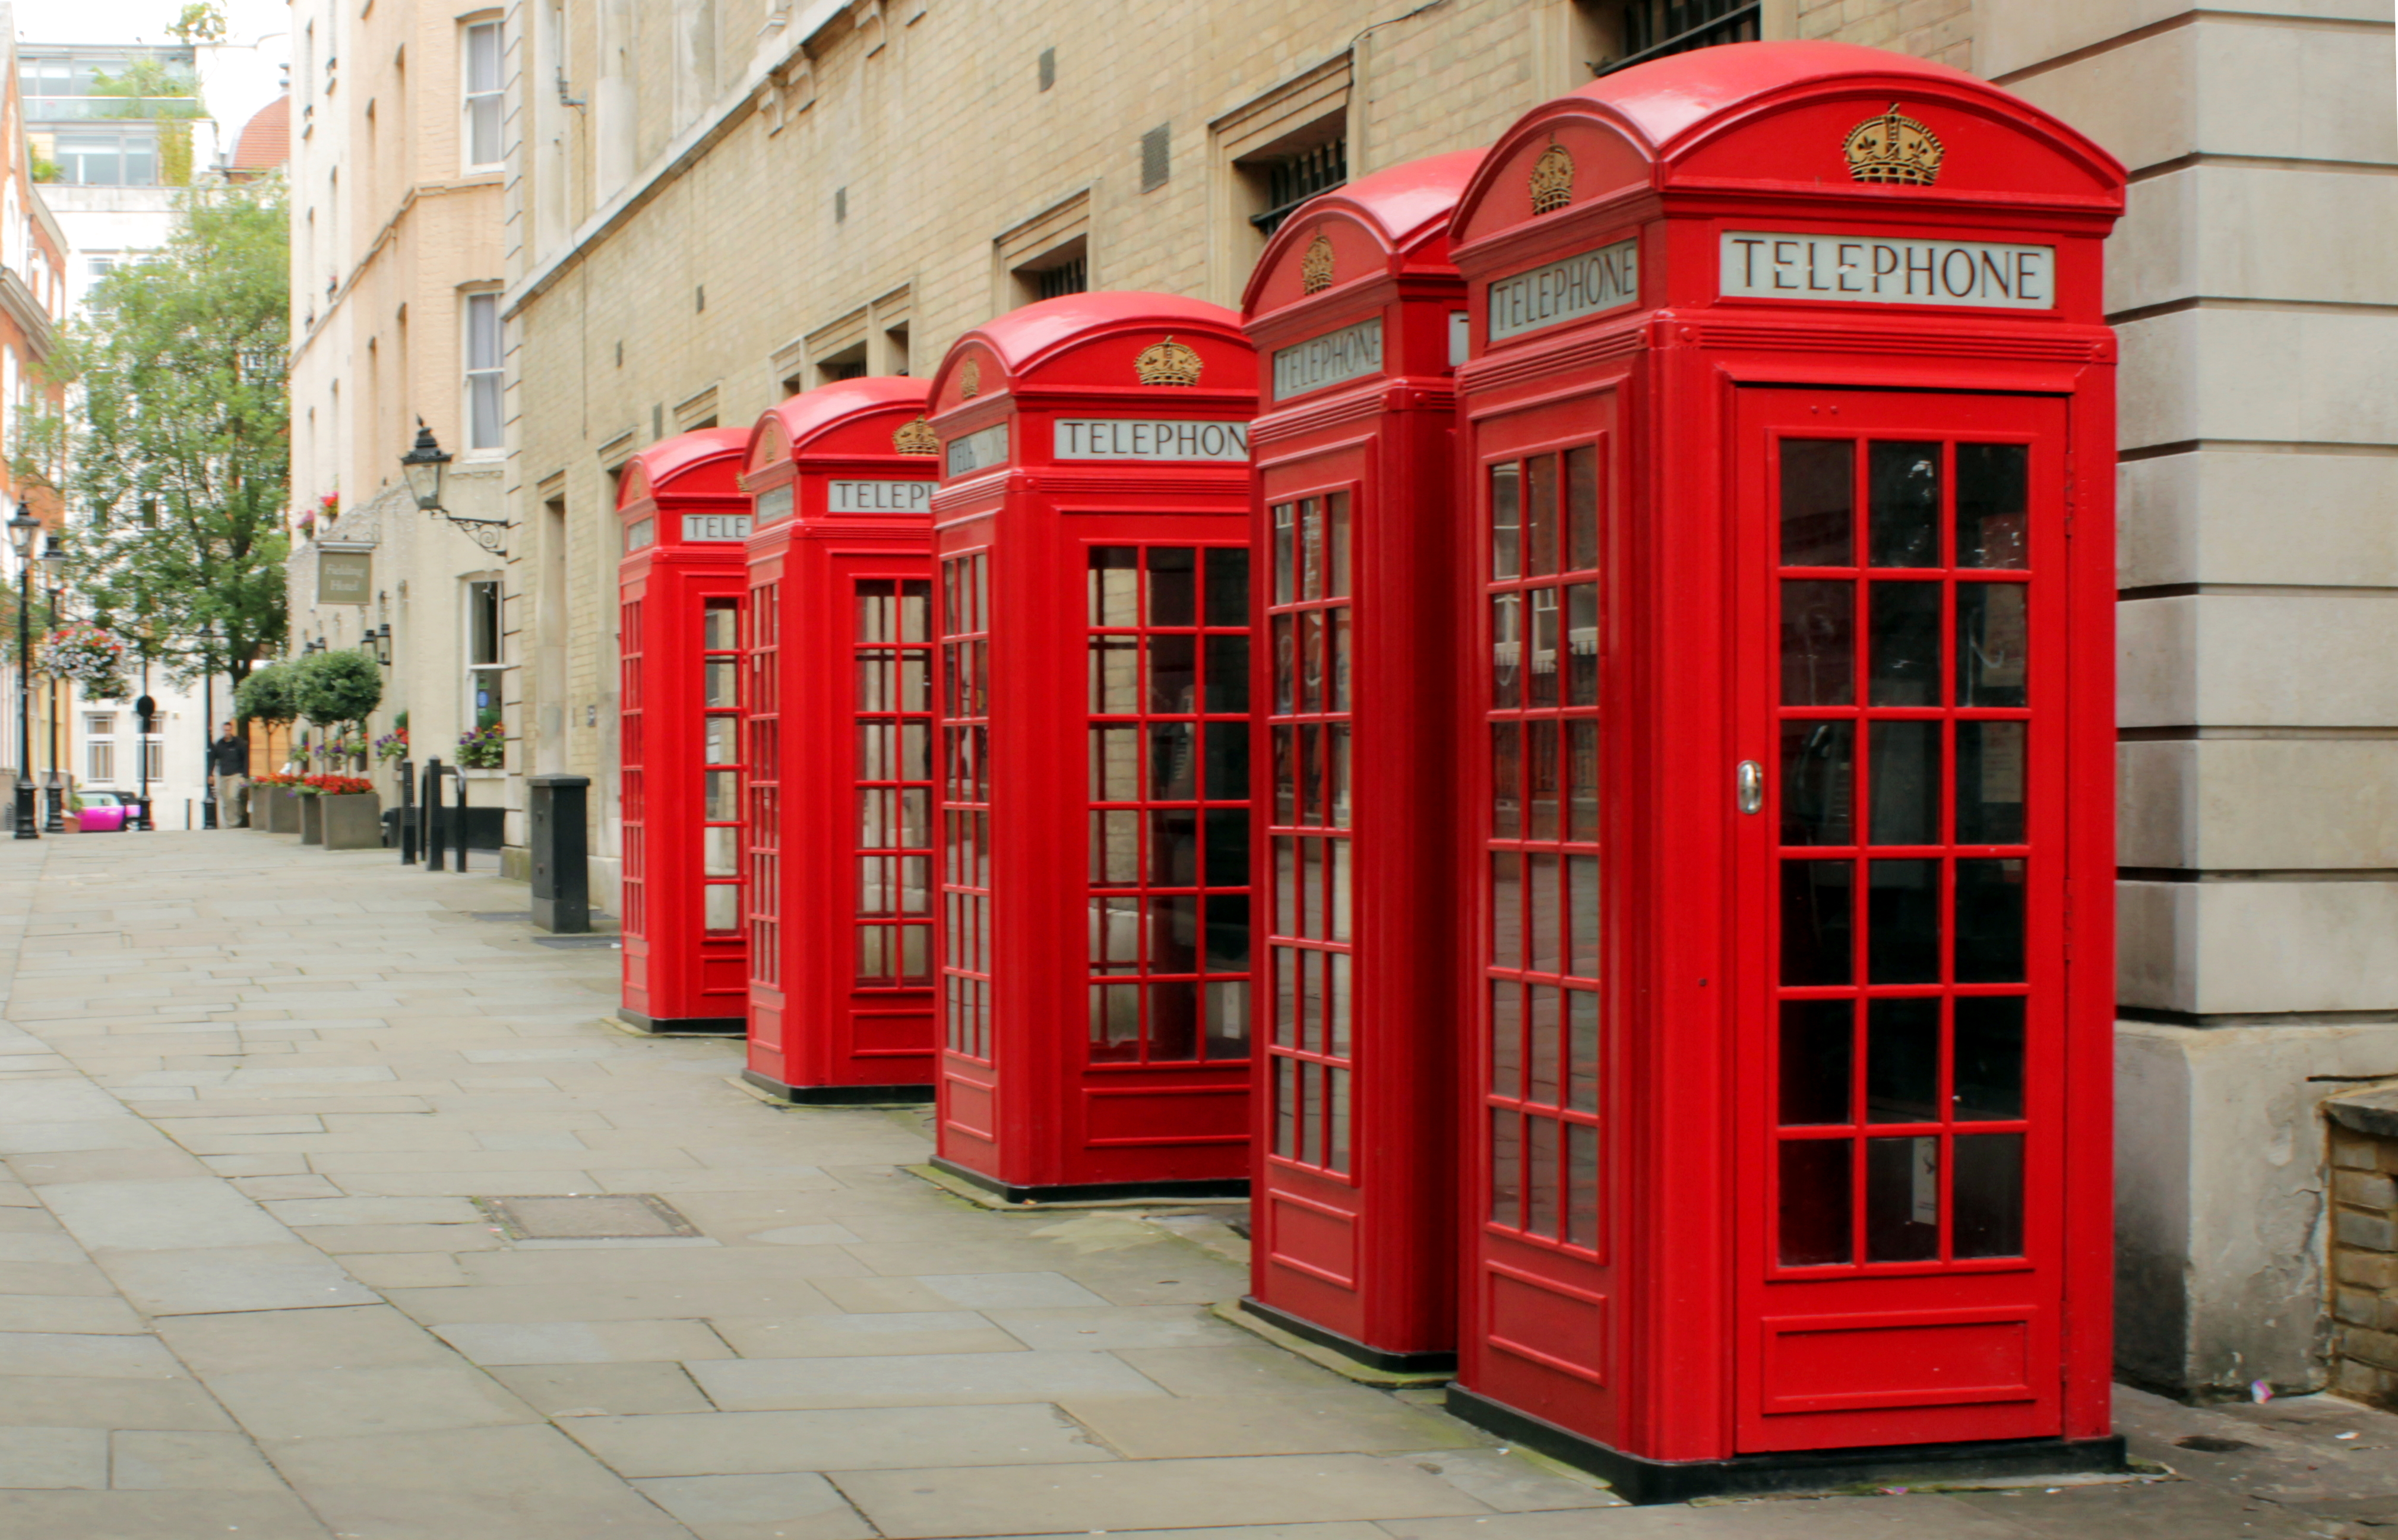 """""""Red Public Phone Boxes - Covent Garden, London, England - July 10, 2012"""" by M0tty - Own work. Licensed under CC BY-SA 3.0 via Wikimedia Commons."""